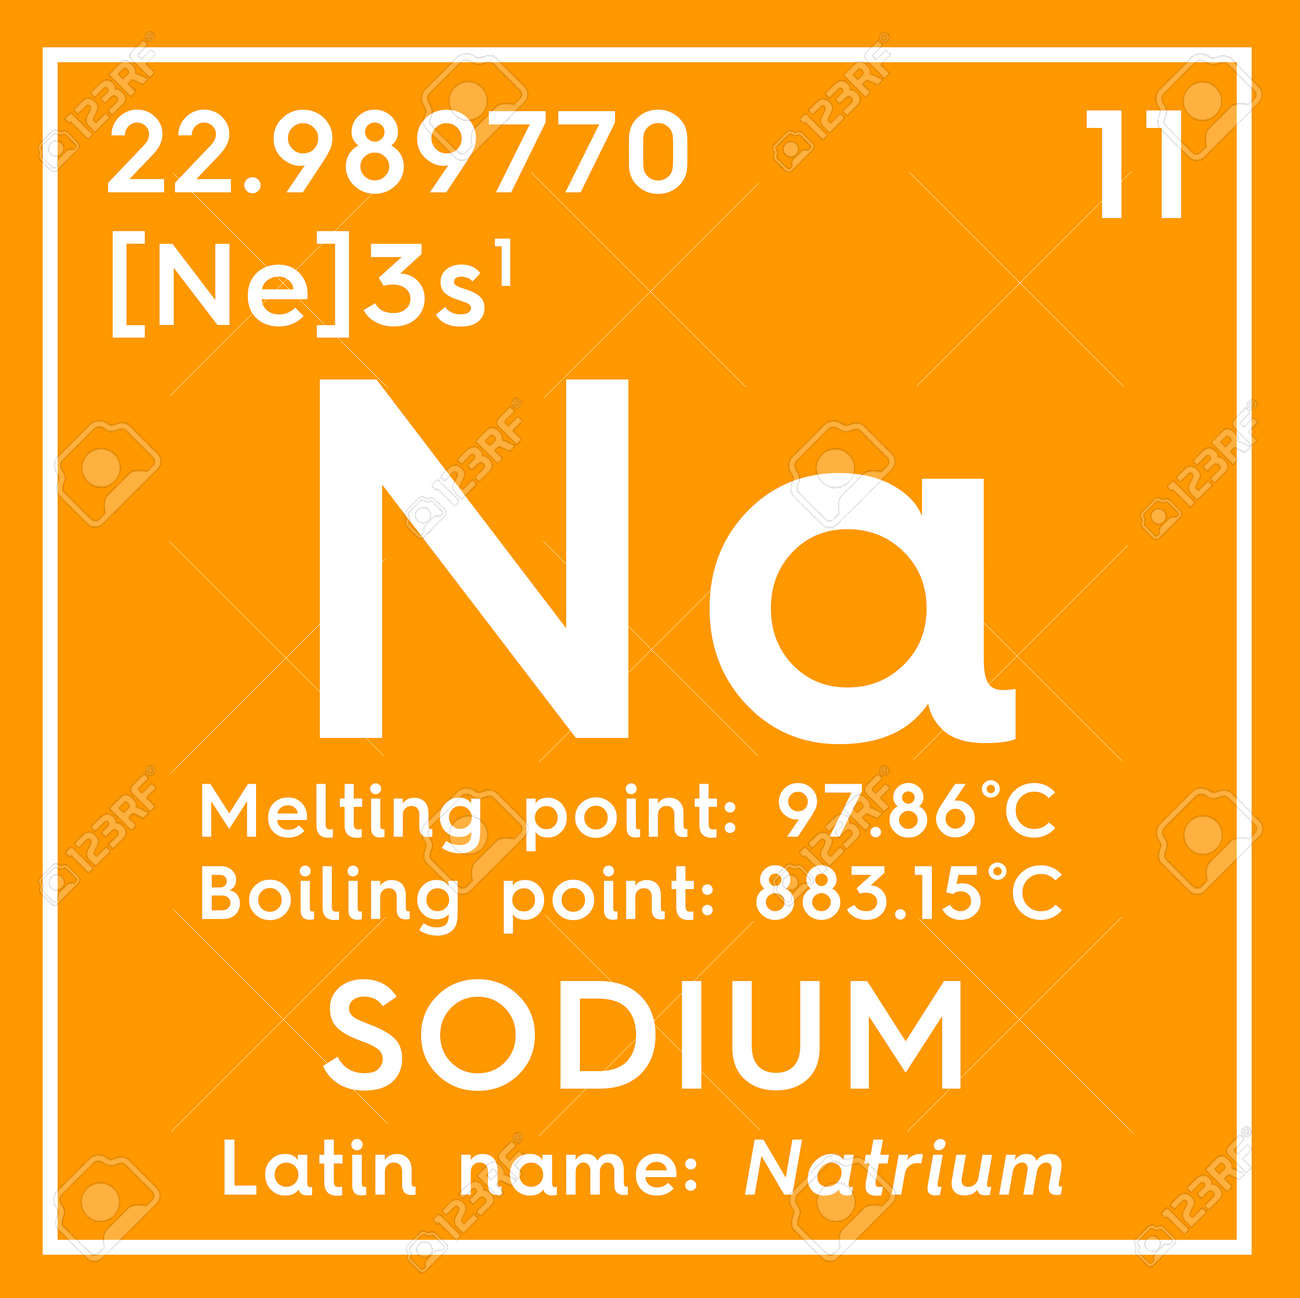 Sodium natrium alkali metals chemical element of mendeleevs sodium natrium alkali metals chemical element of mendeleevs periodic table sodium in urtaz Image collections